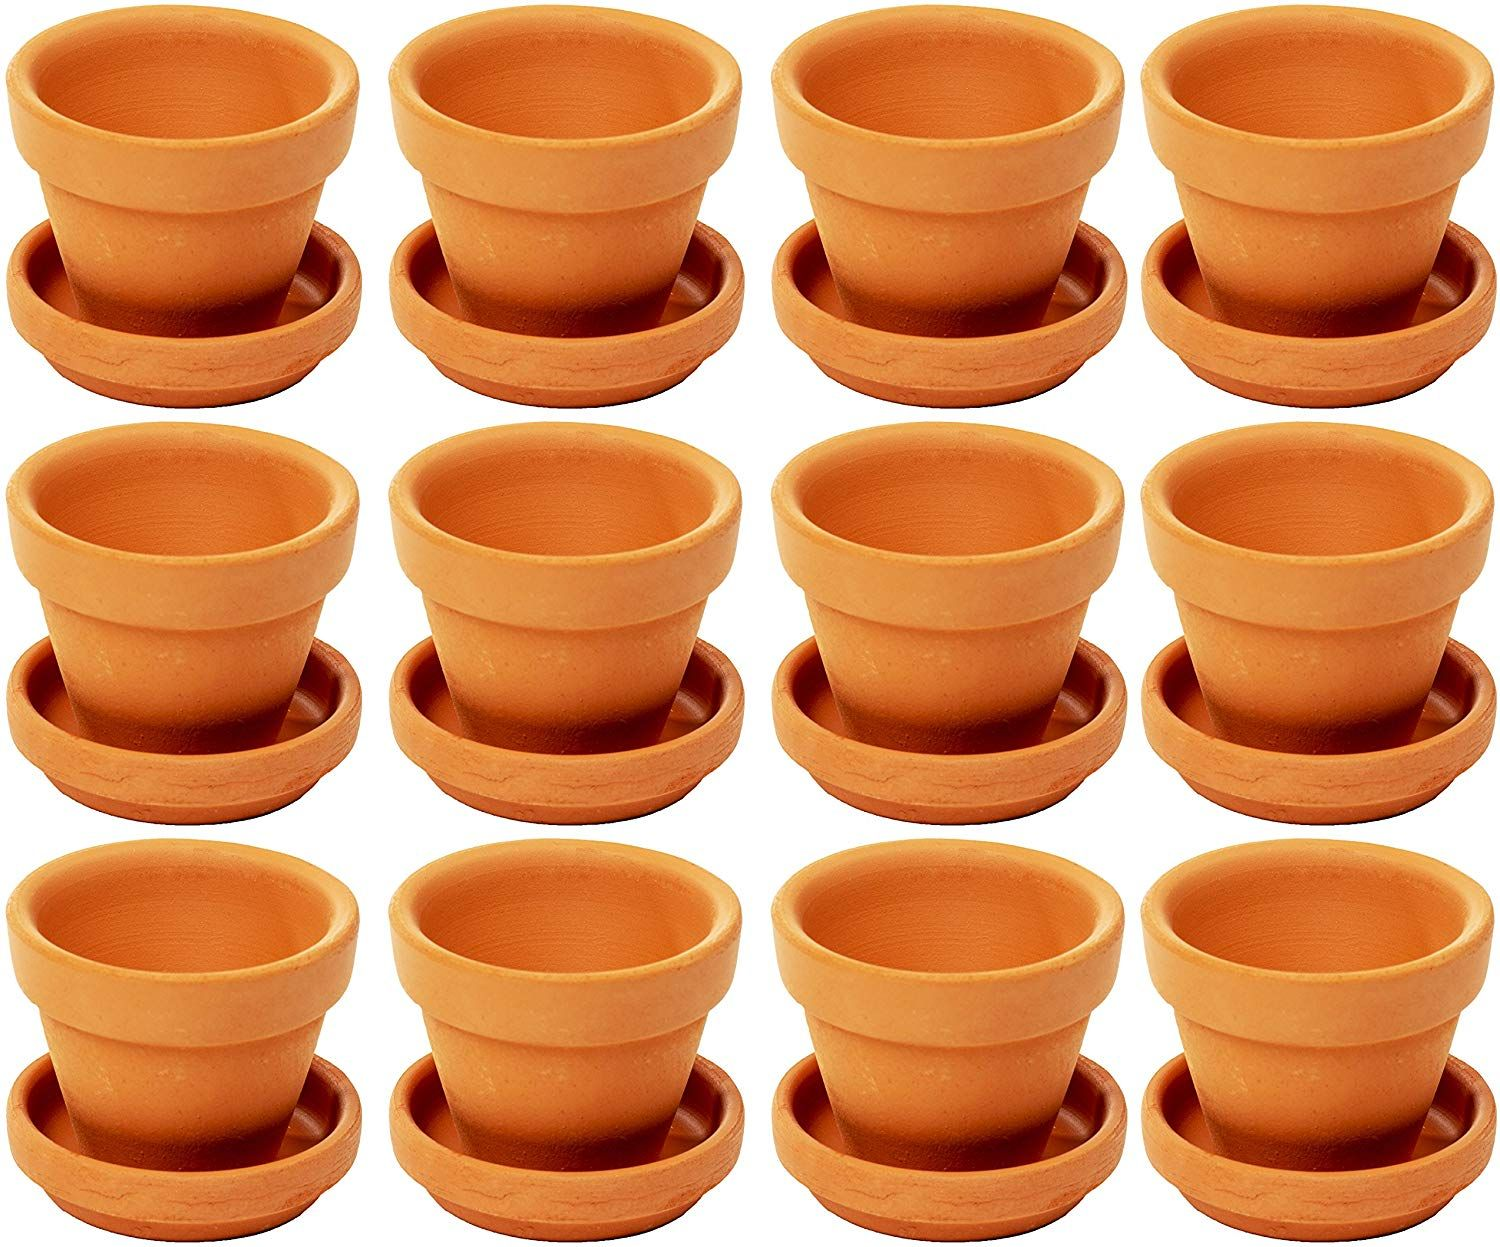 Juvale Small Terra Cotta Pots With Saucer 12 Pack Clay Flower Pots With Saucers Mini Flower Pot Planters For Indoor Outdoor Plant Succulent Display Brown In 2020 Clay Flower Pots Small